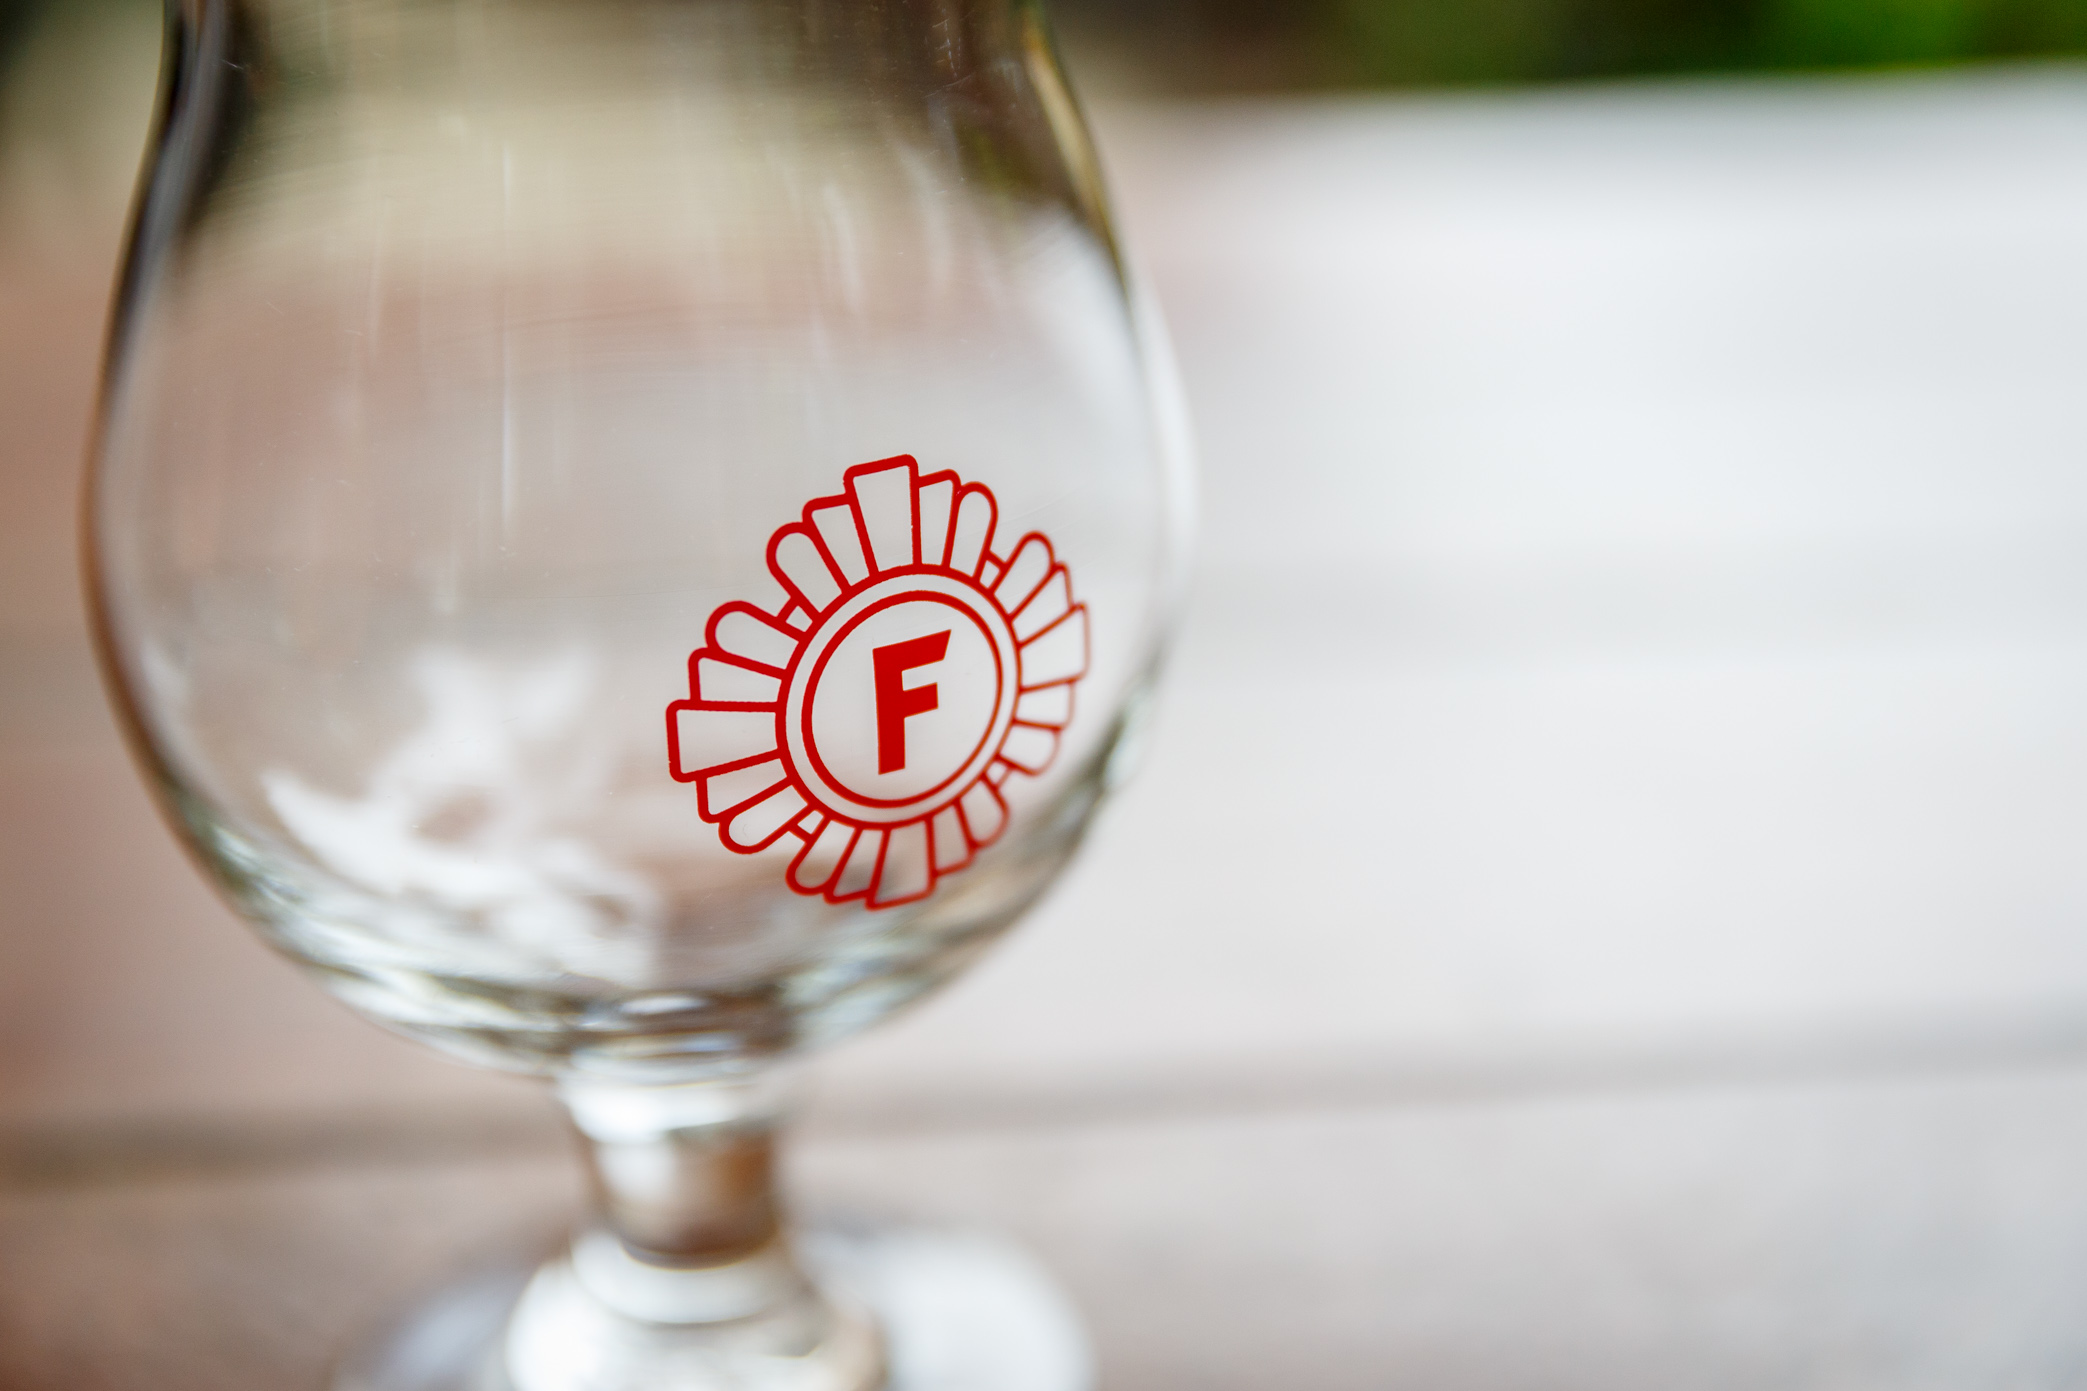 Fire Station beer glass